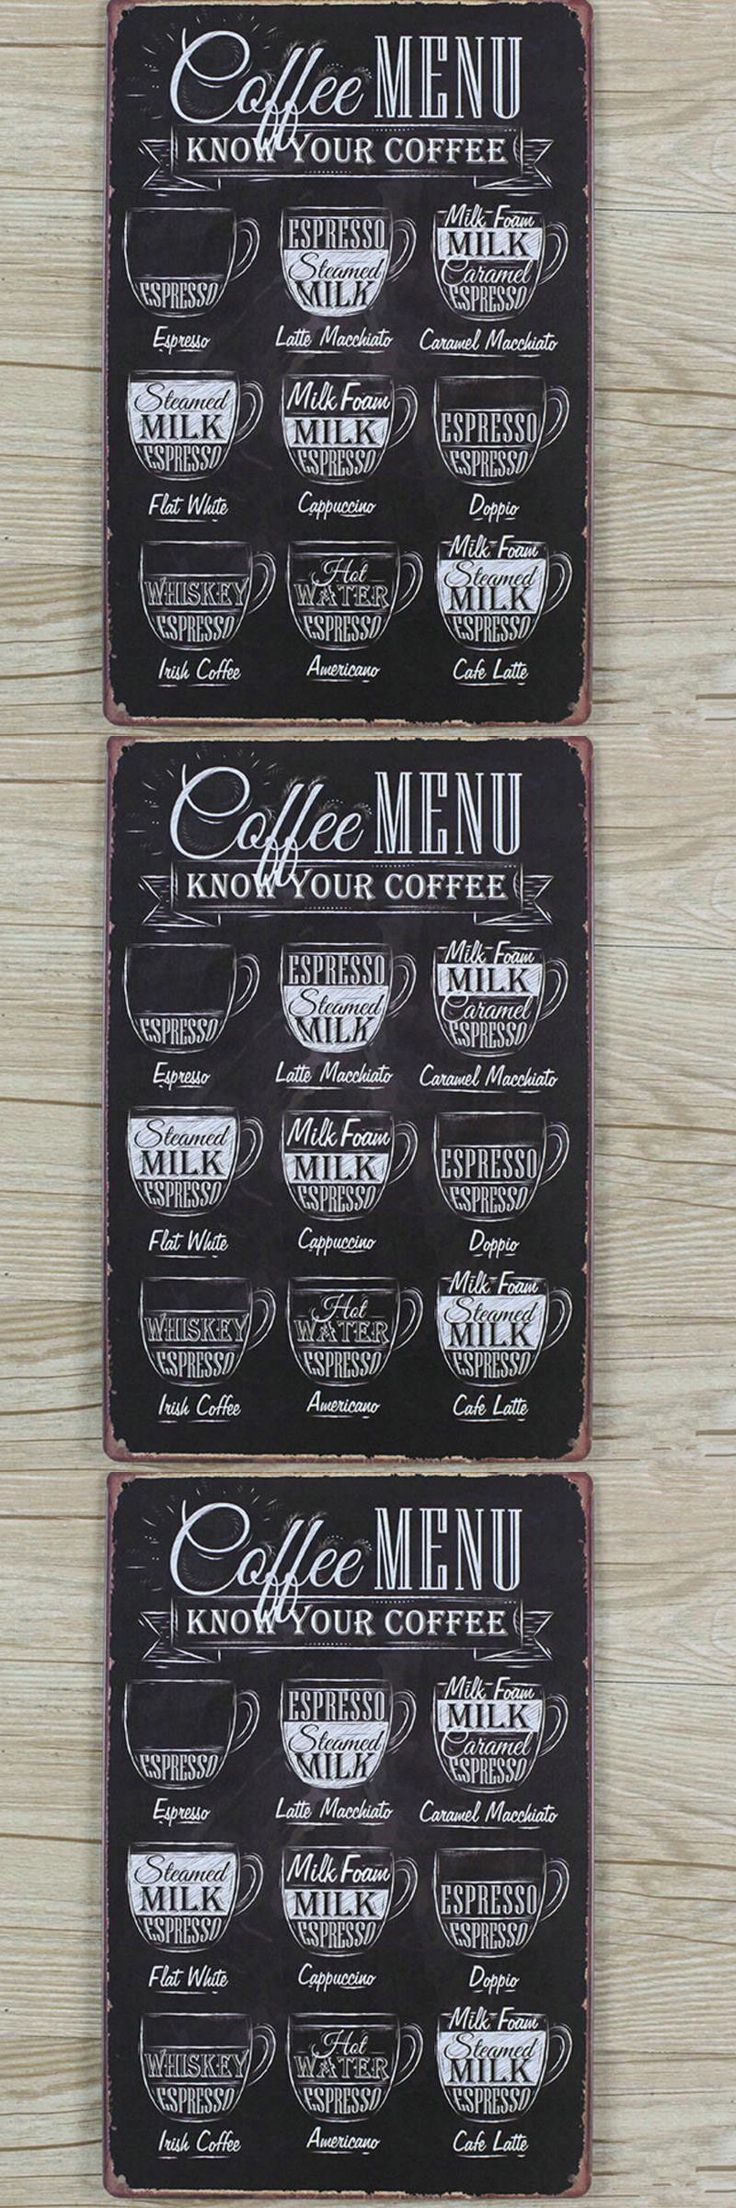 Coffees menu Vintage Tin Sign Bar pub home Wall Decor Retro Metal Art Poster  Bar Coffee Pub Retro $6.99